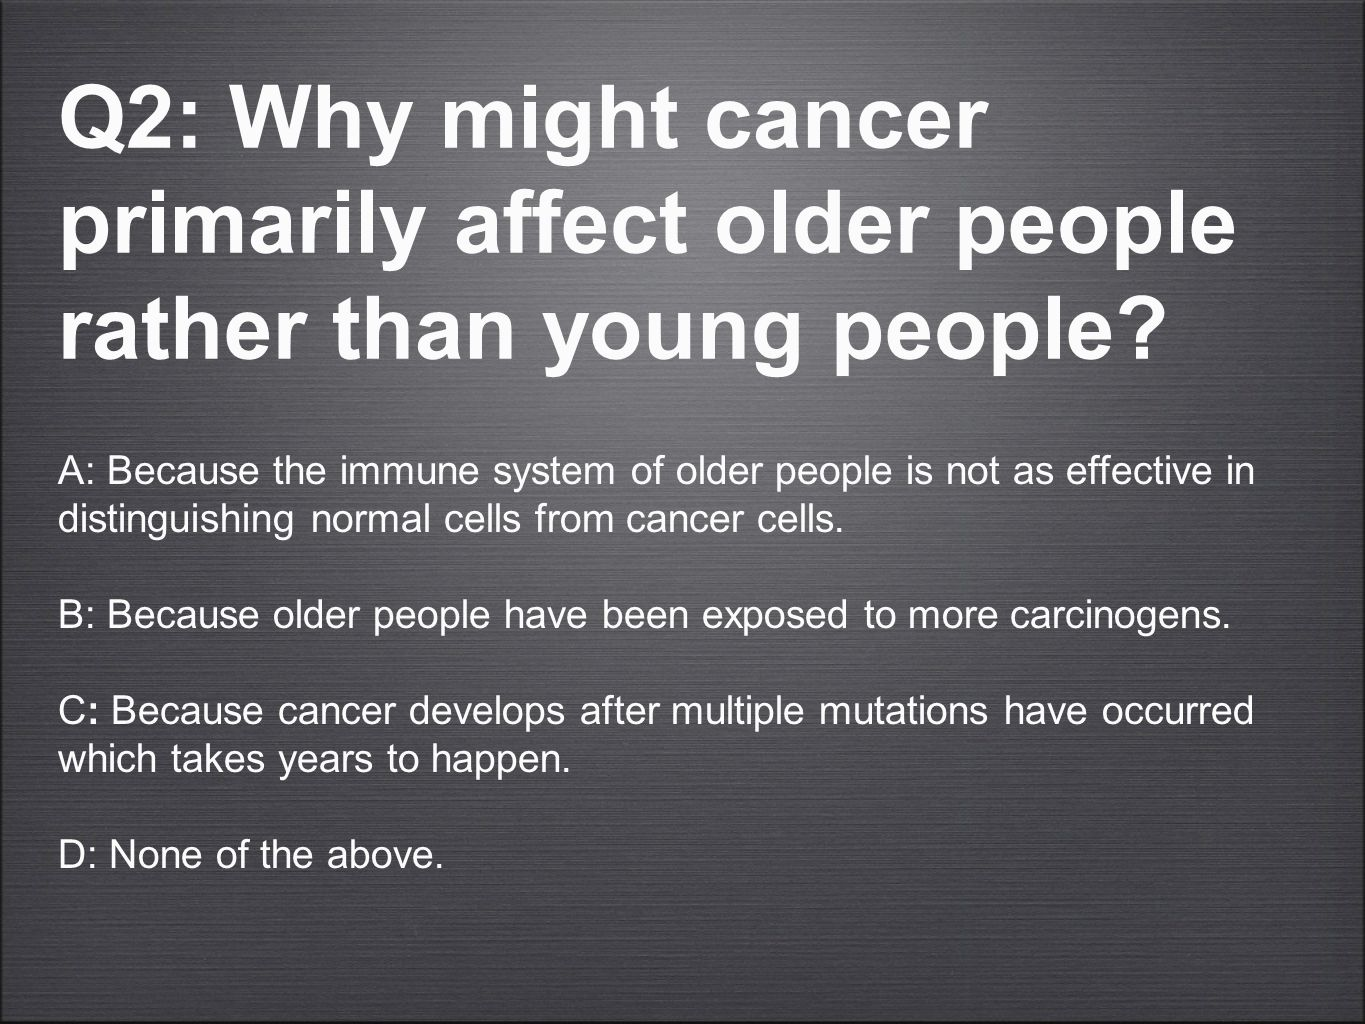 Q2: Why might cancer primarily affect older people rather than young people